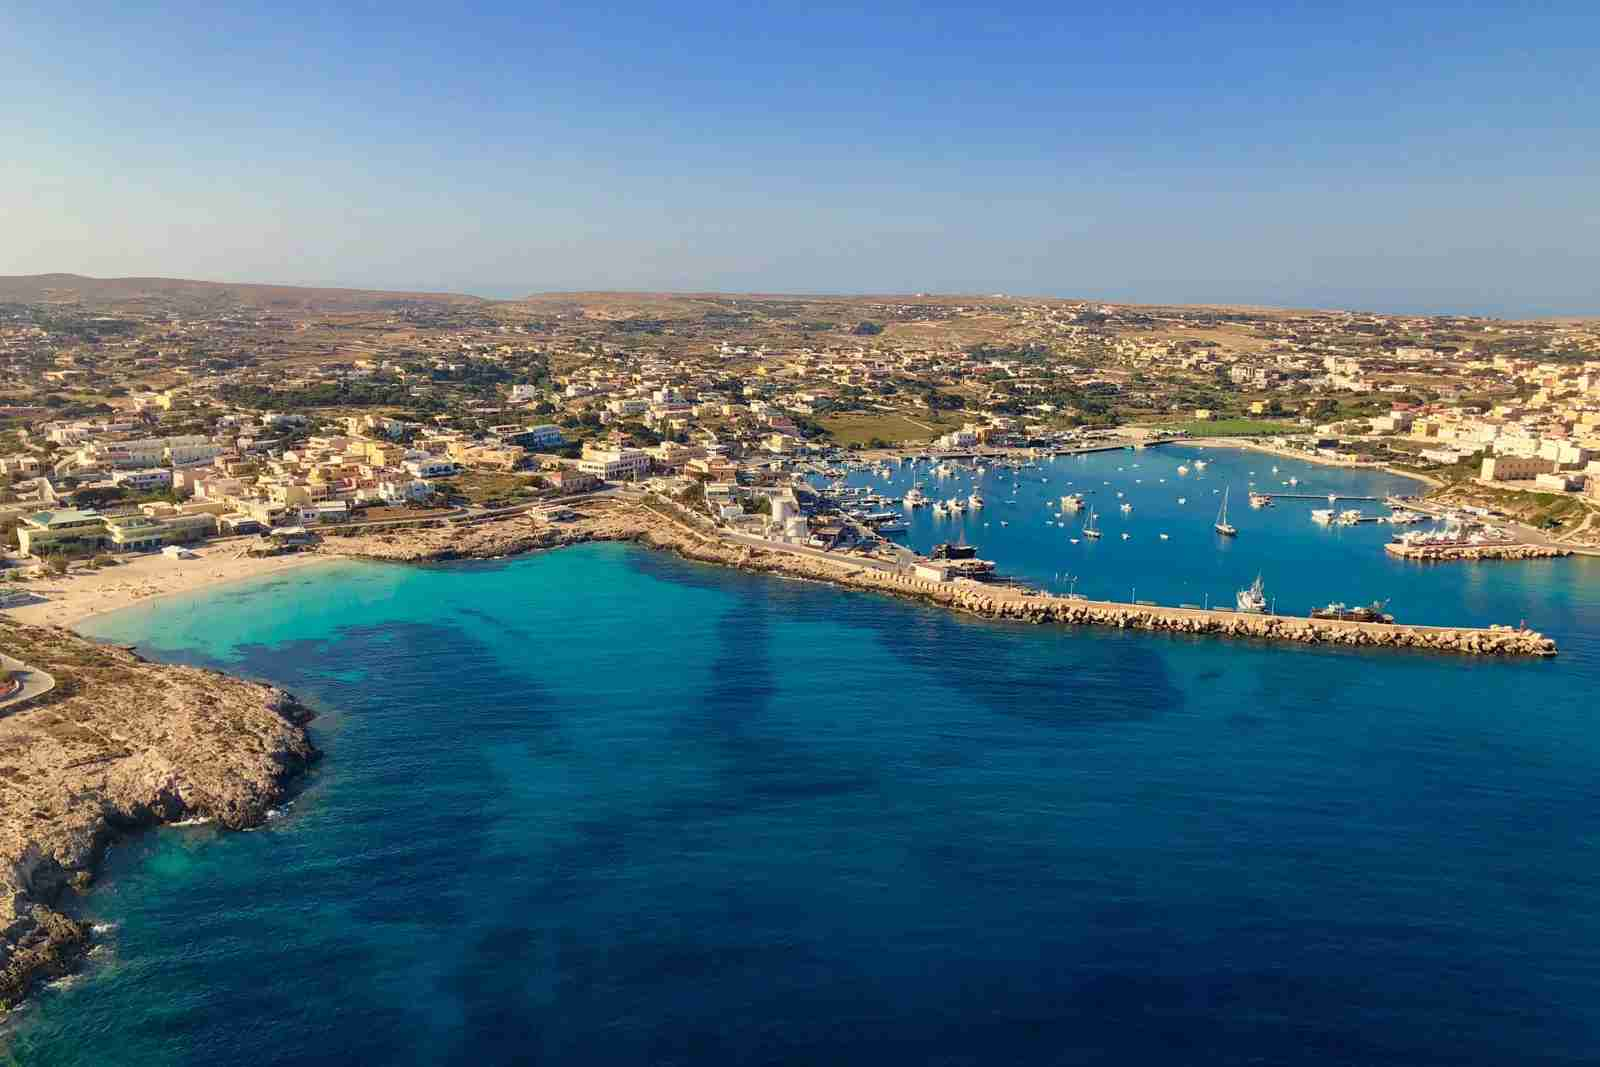 Lampedusa, Italy. (Photo by Carlo Spampinato/EyeEm/Getty Images)